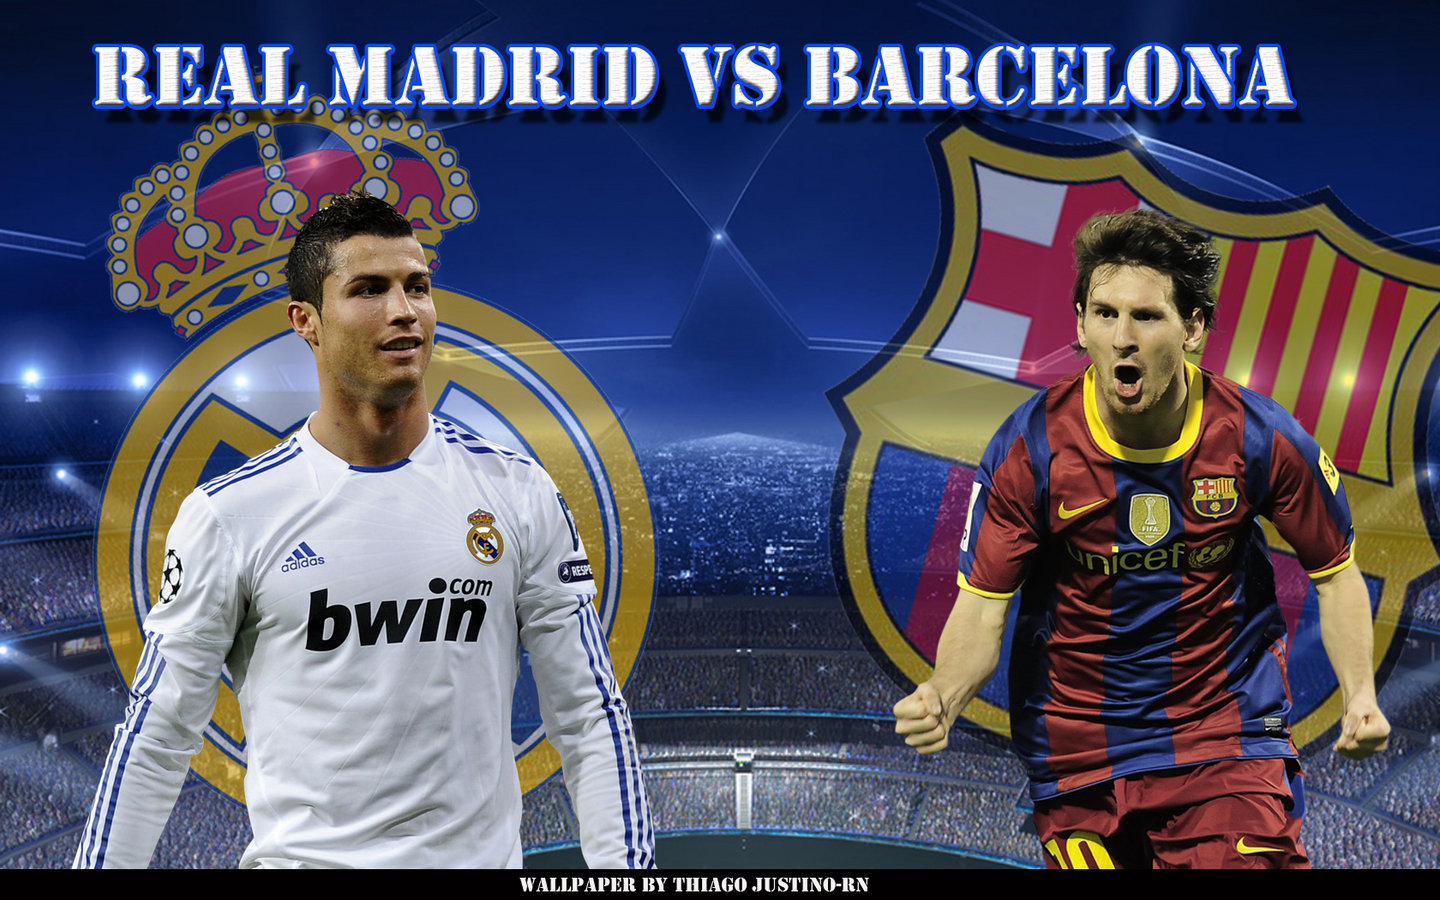 http://4.bp.blogspot.com/-24Myj6_K-X0/UQlVHYDllOI/AAAAAAAAL4s/S-TbtvkSqjY/s1600/wallpaper_real_madrid_vs_barcelona_cristiano_ronaldo_lionel_messi_fc_barcelona_real_madrid.jpg